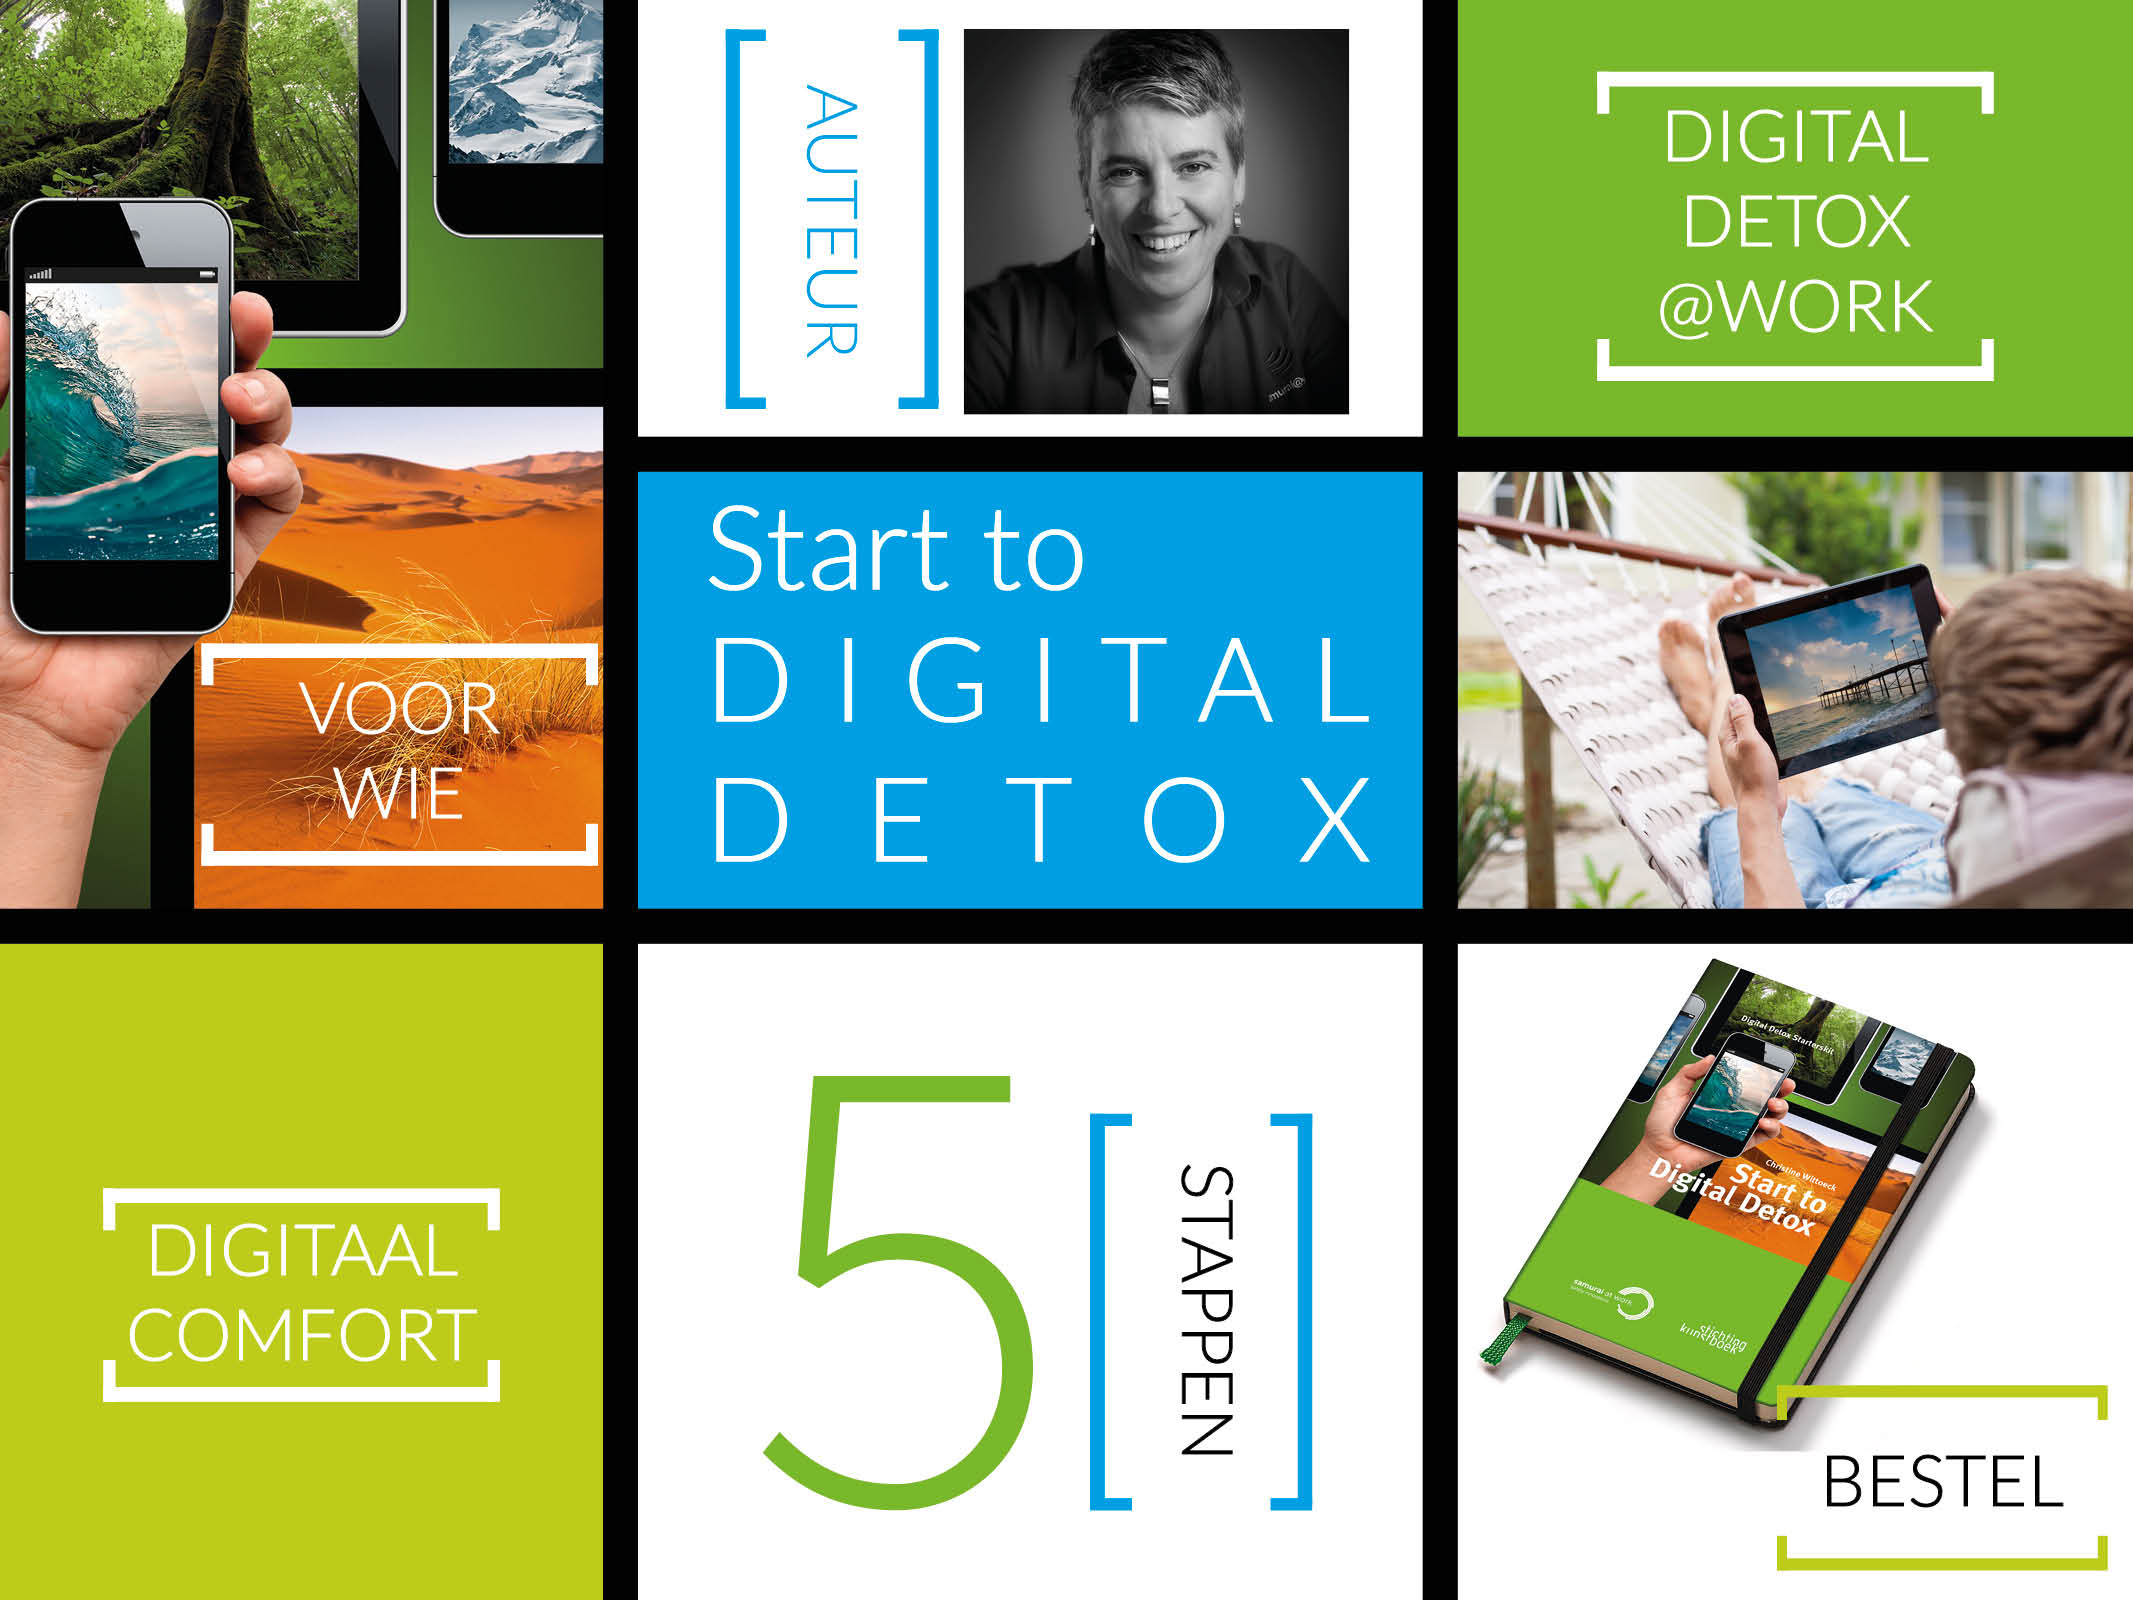 Start to Digital Detox - Werkboek